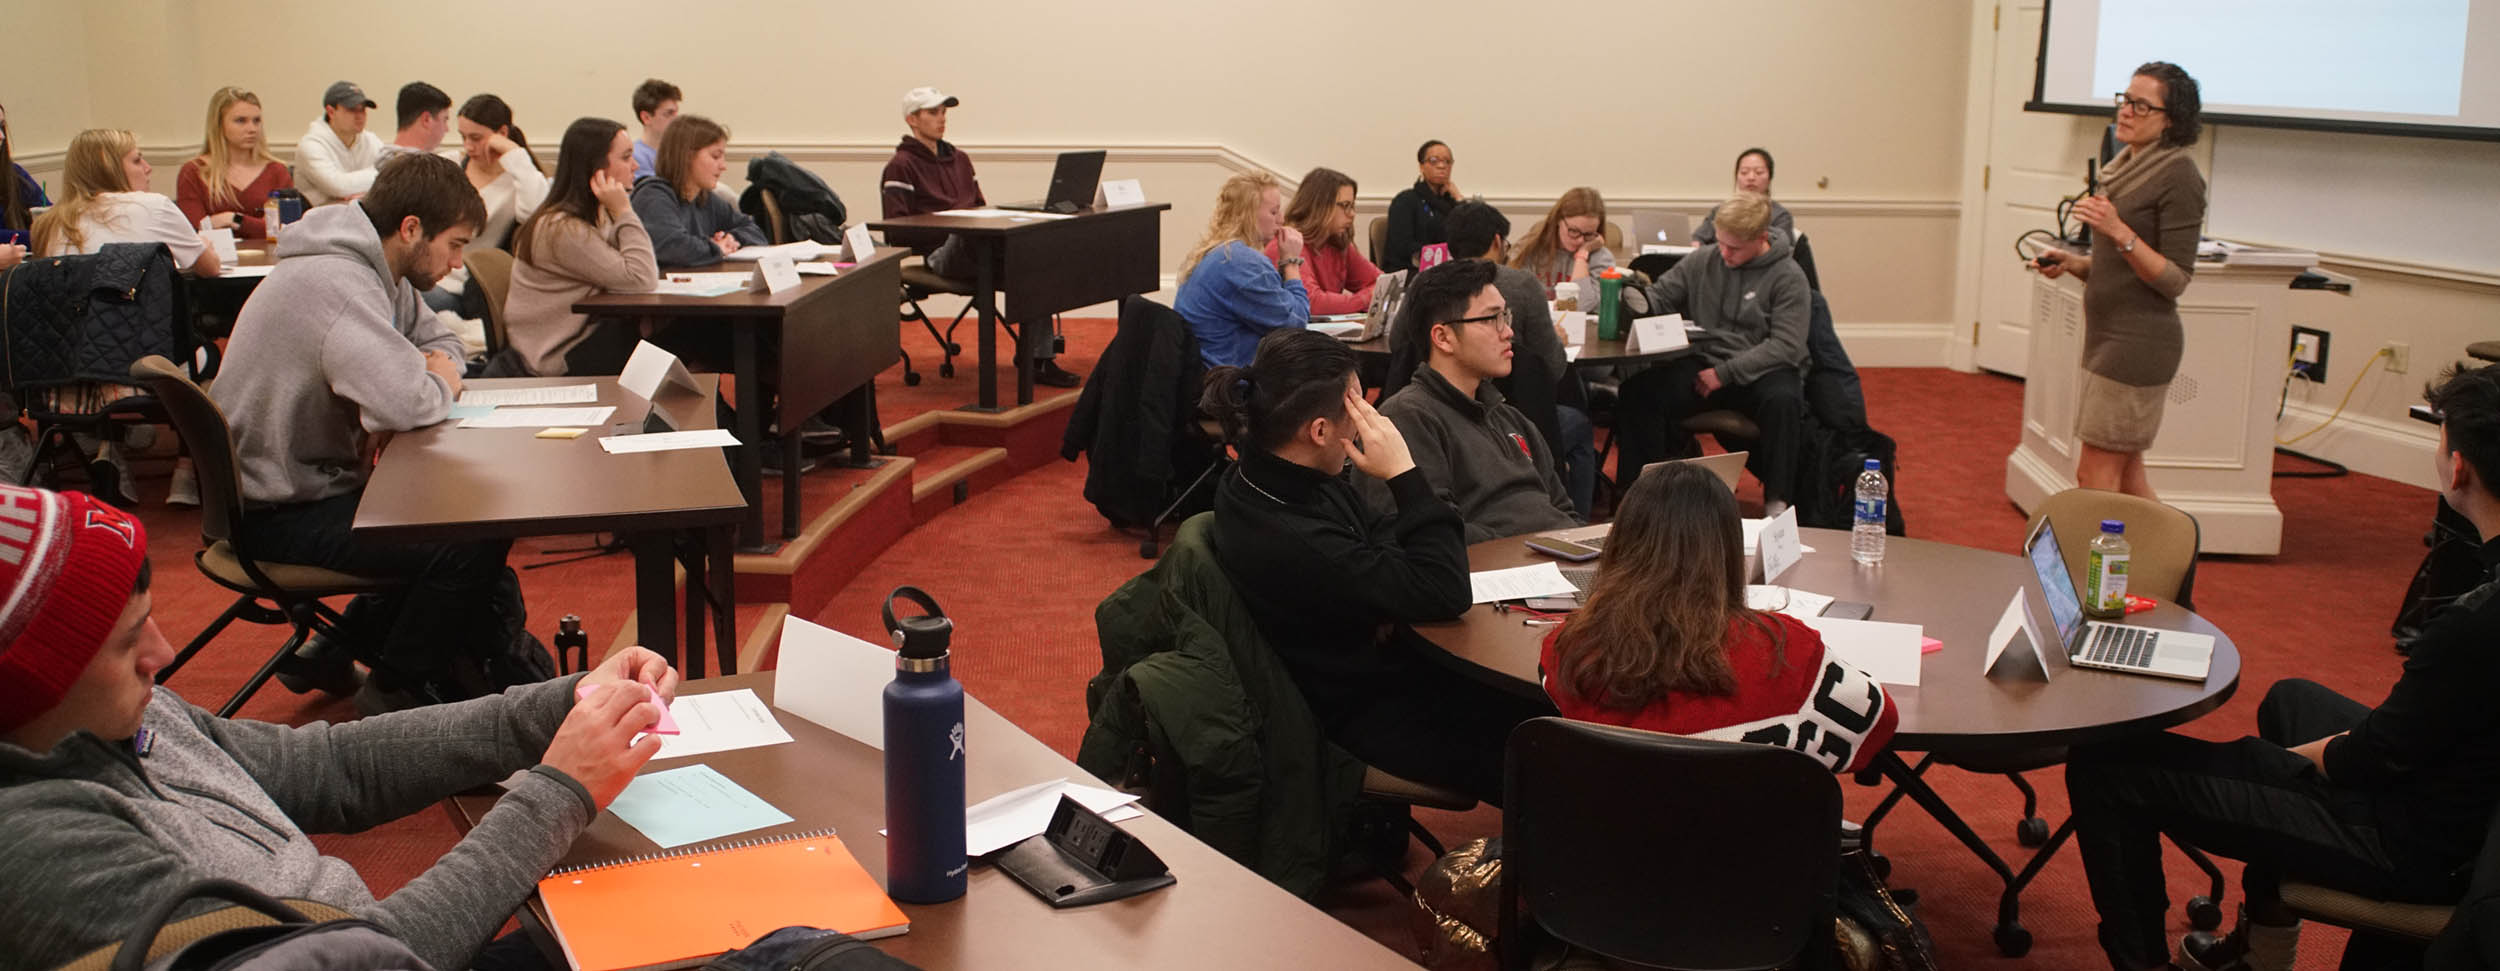 Wide photo of Brenda Homan teaching an accounting class